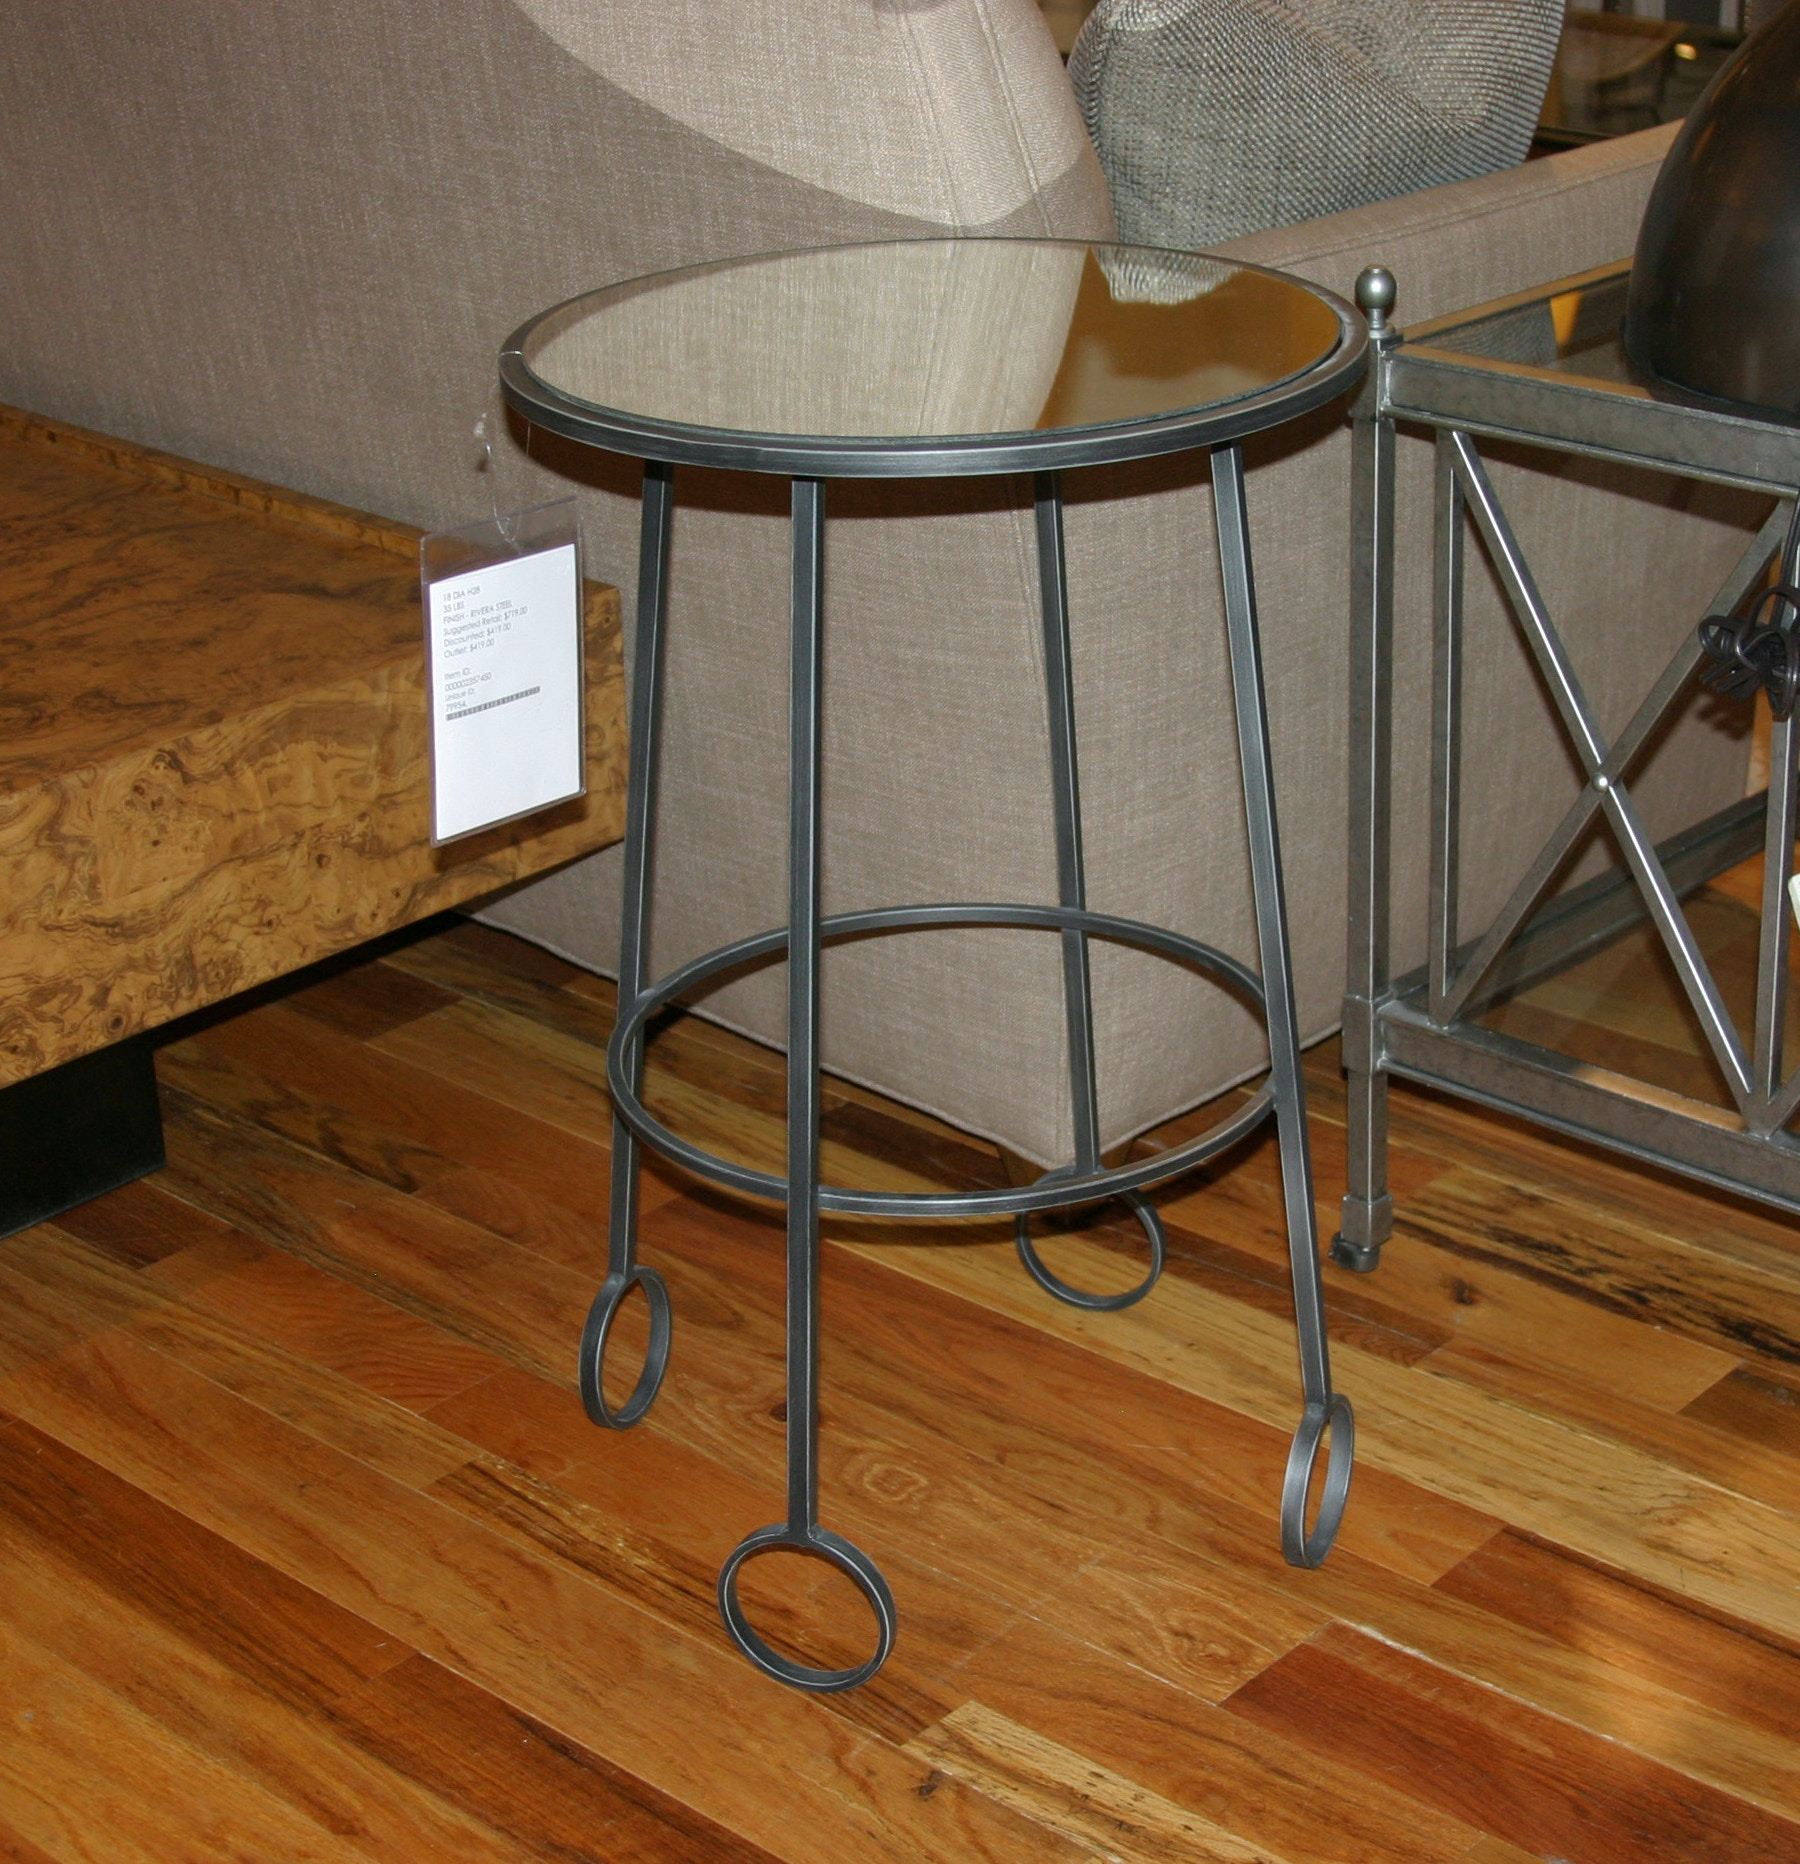 327EM RS Outlet. Rivera Steel Accent Table By Vanguard Furniture